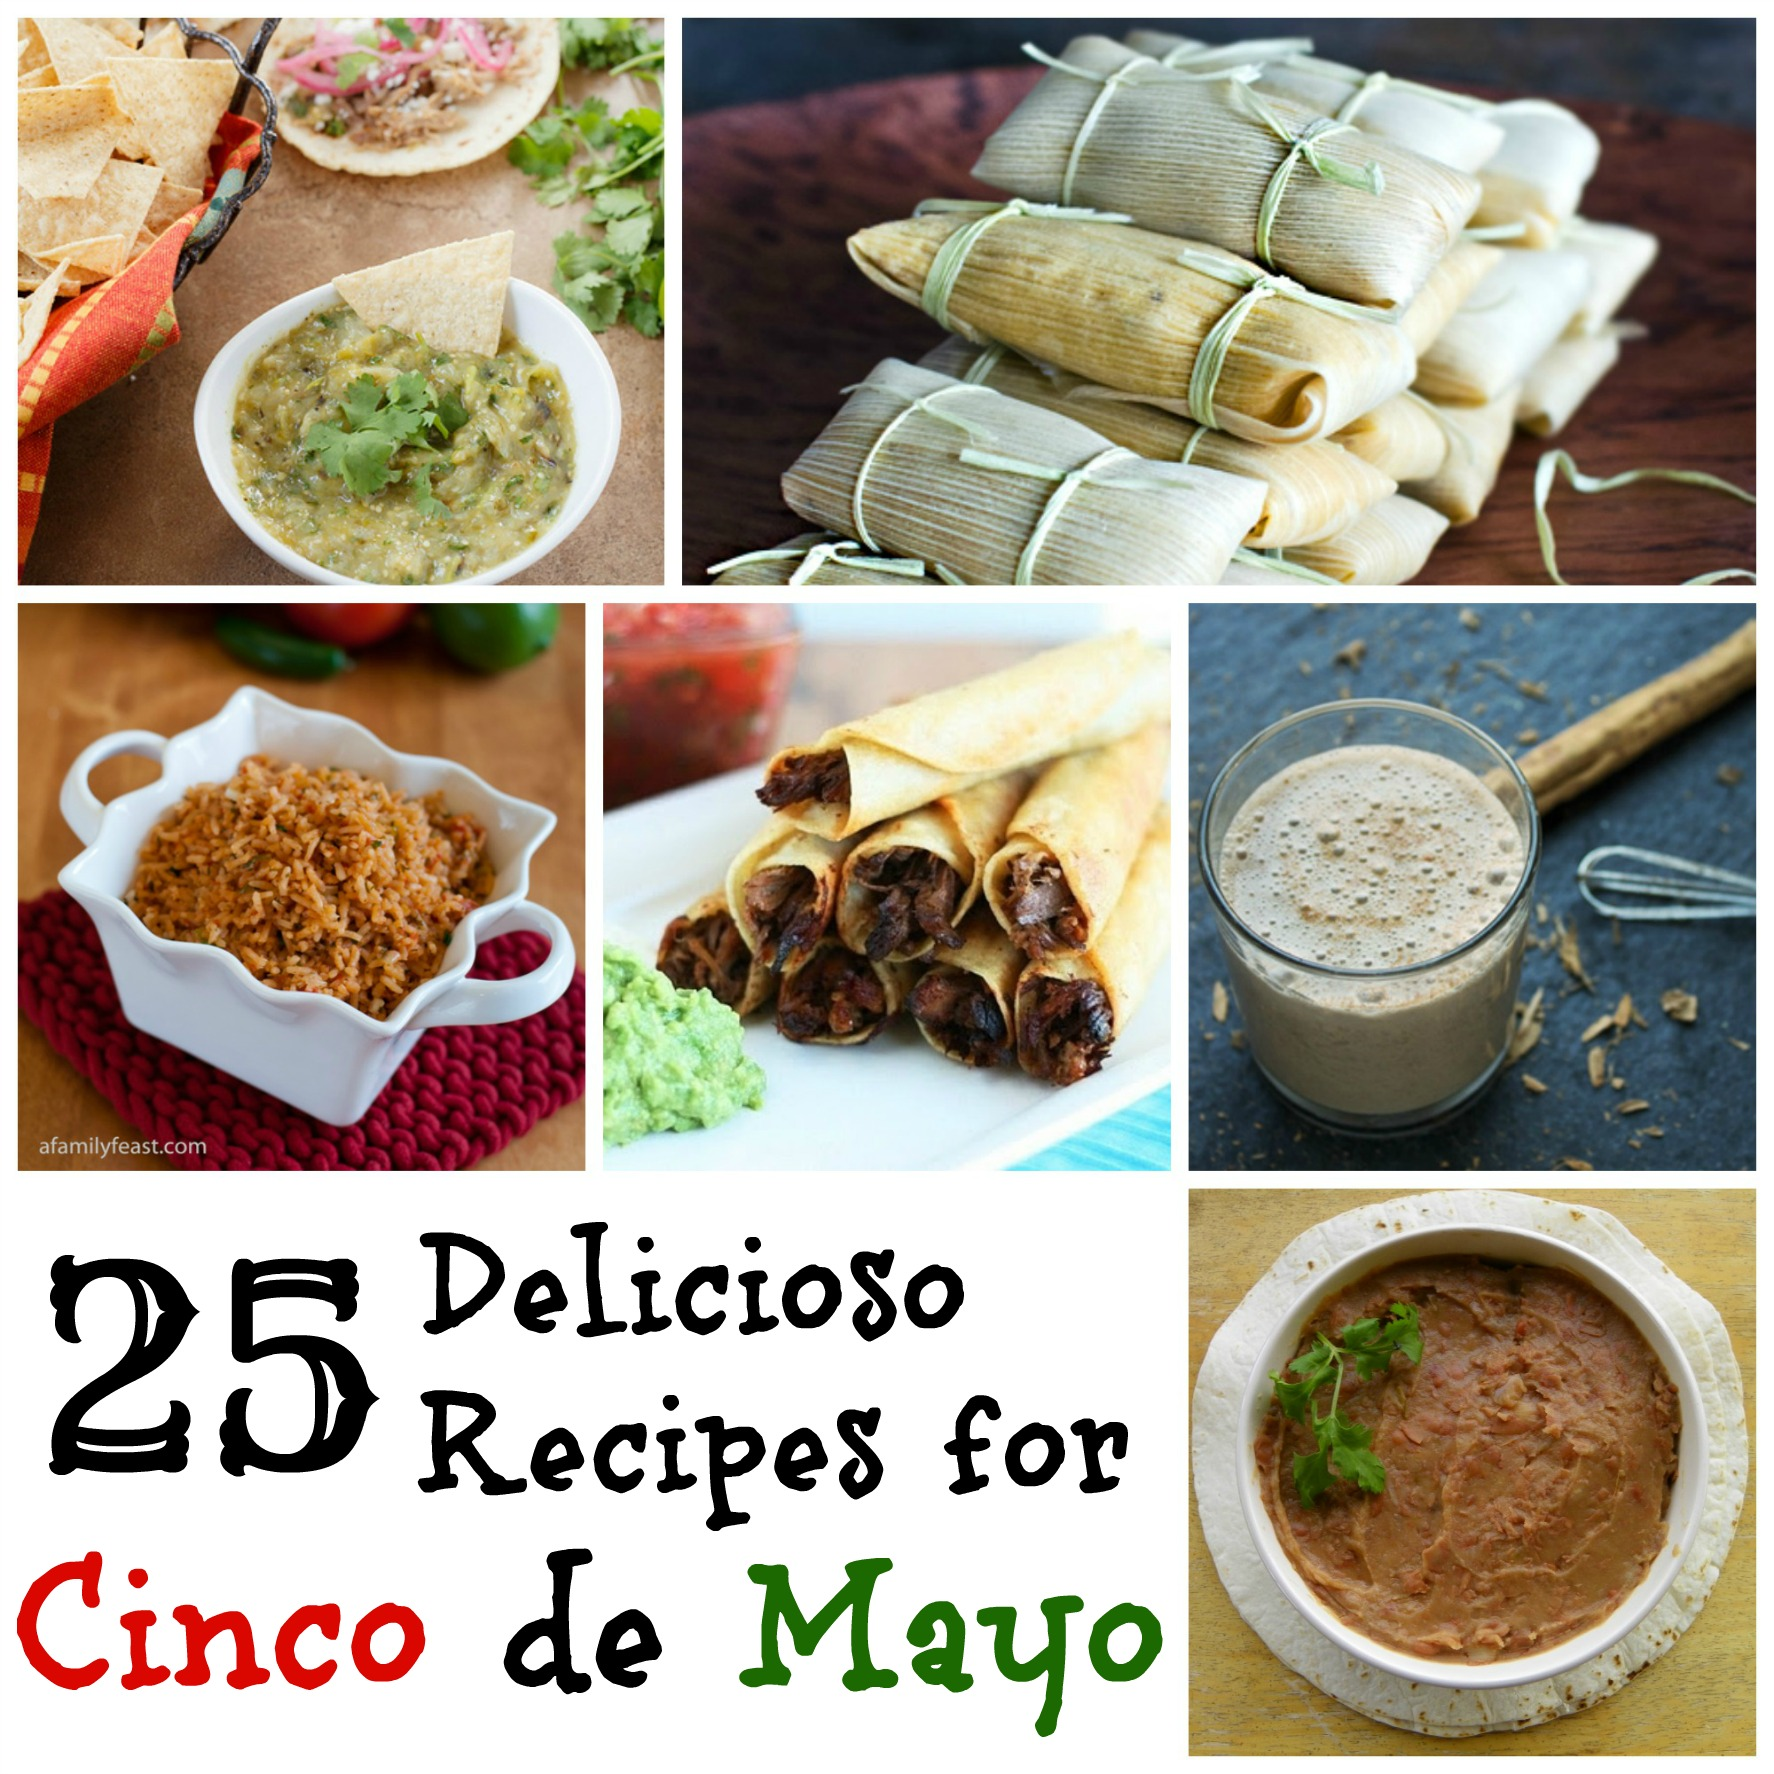 Recipes for Cinco de Mayo